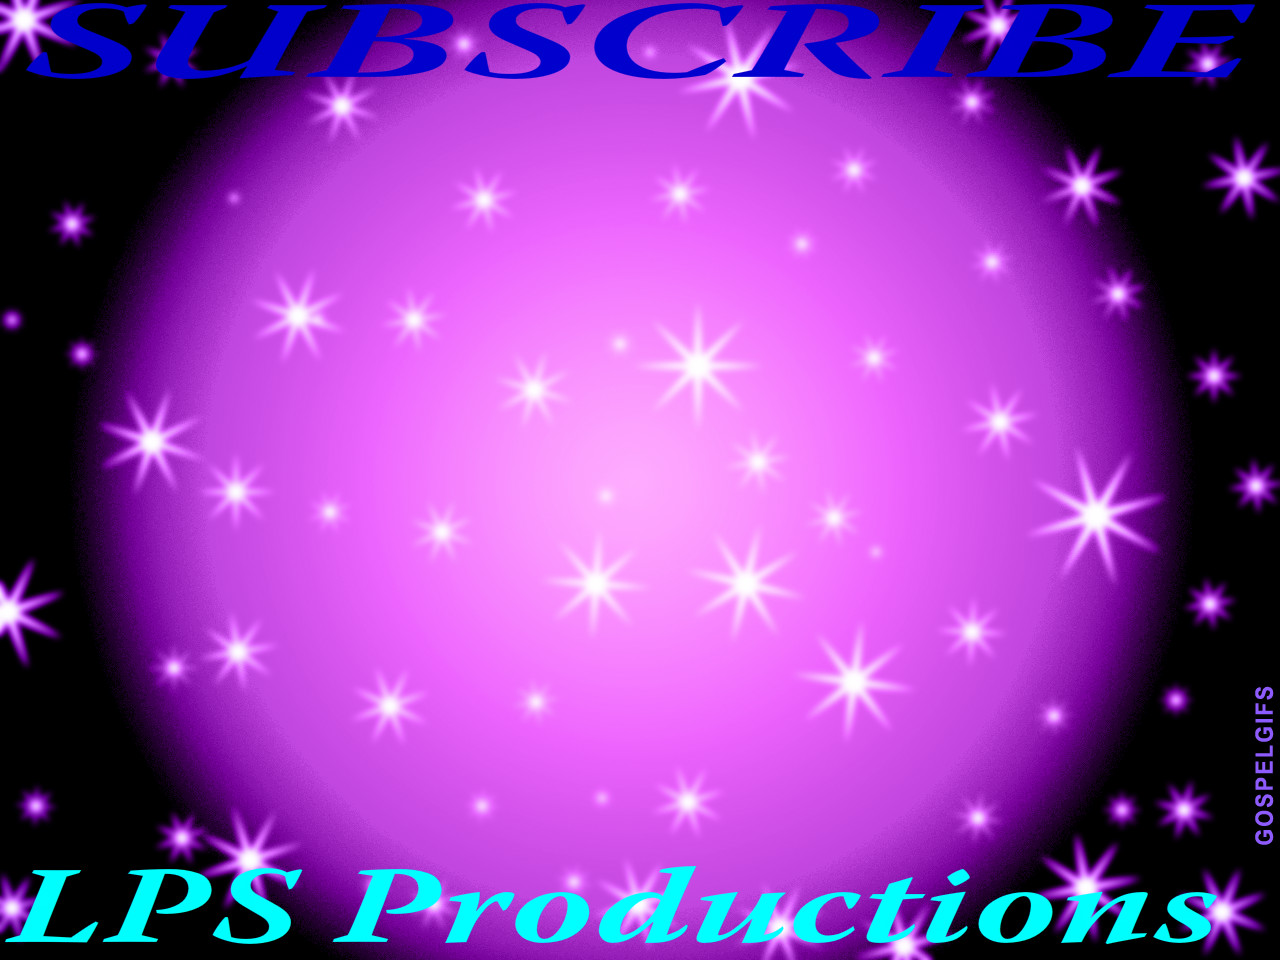 cool background for lps lovers on youtube   lpsmaniac45s webseety 1280x960